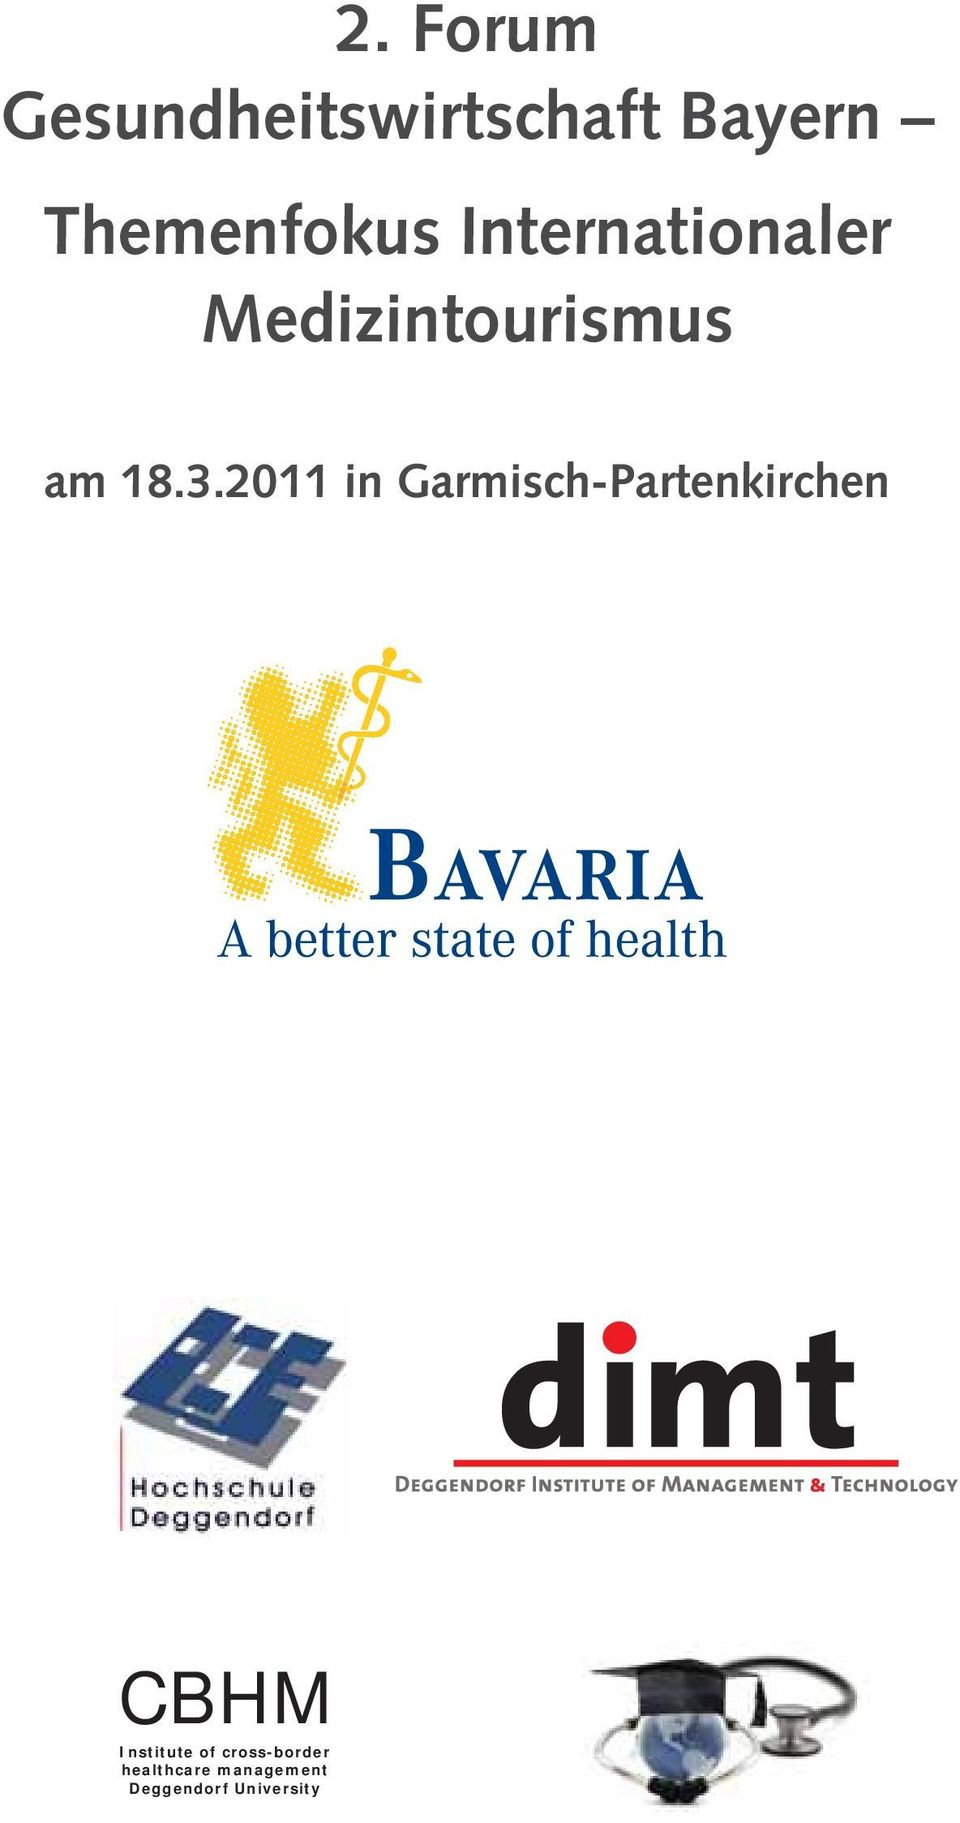 18.3.2011 in Garmisch-Partenkirchen CBHM